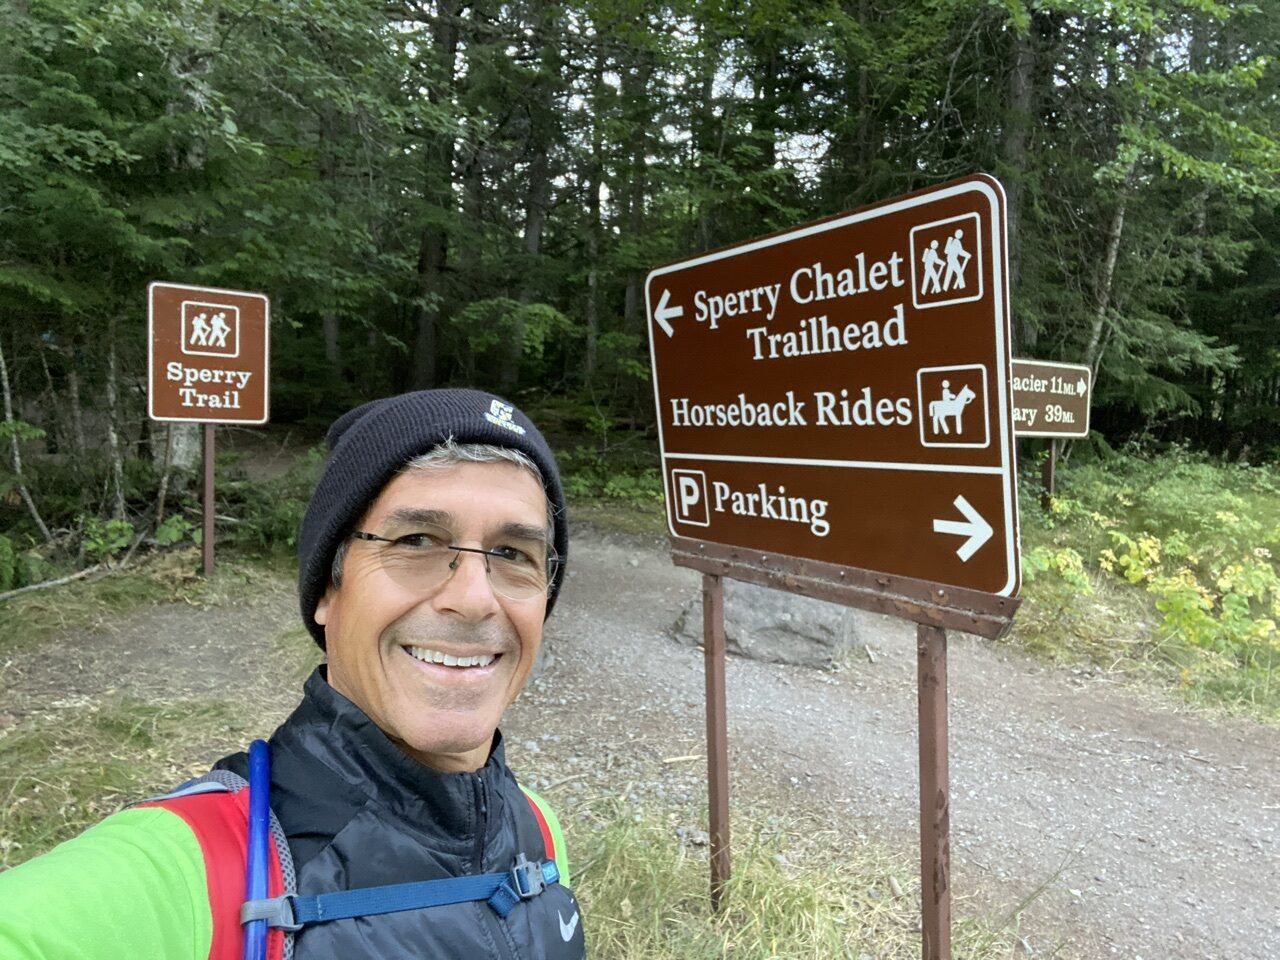 Jeff noel at trail sign